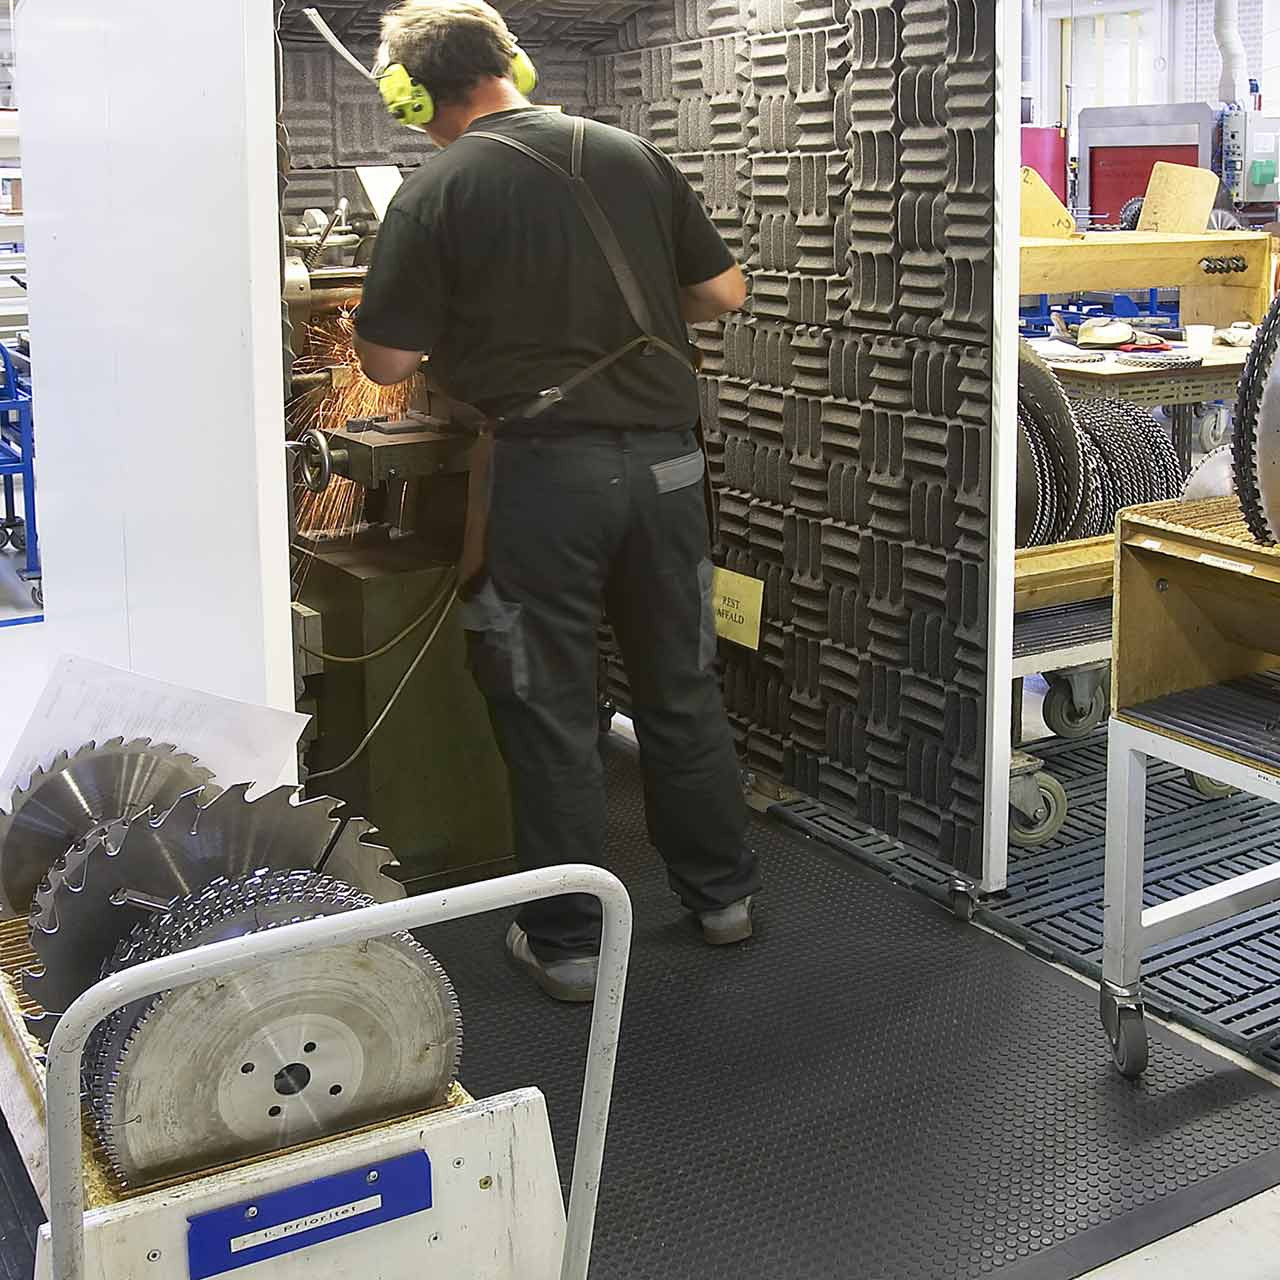 The Nitro matting works well in many environments, increasing safety from slips and falls